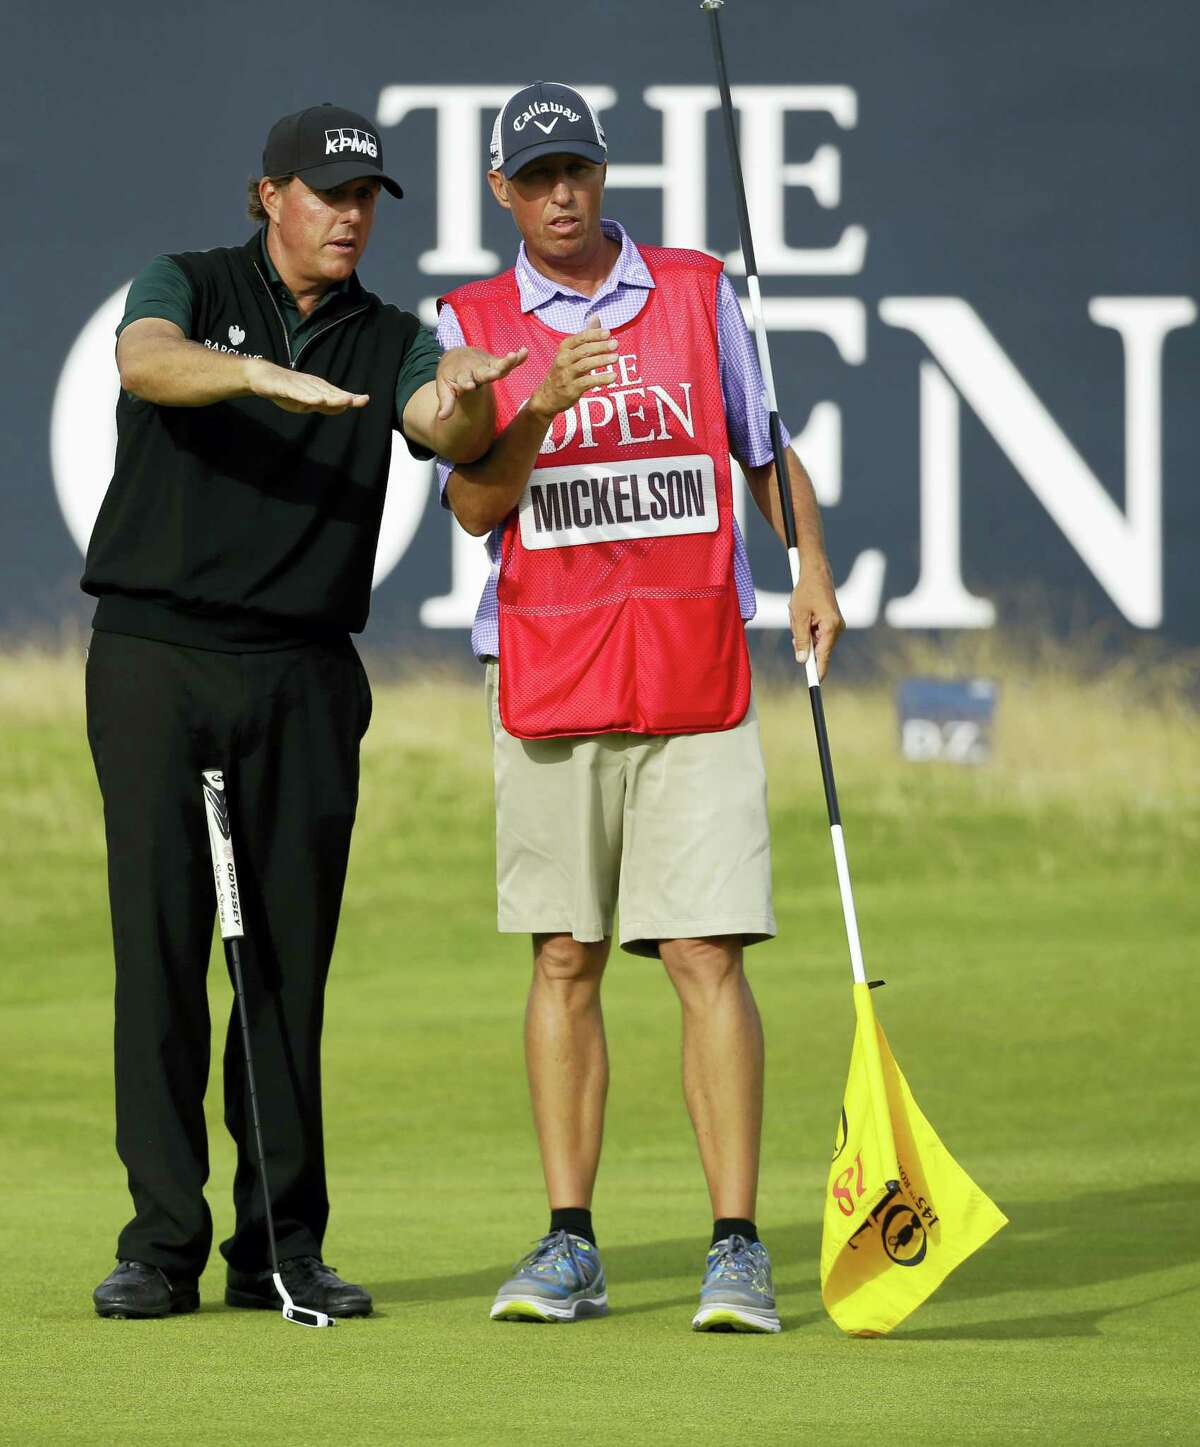 Phil Mickelson of the United States , left talks to his caddie Jim McKay on the 18th green as they look at his putt during the first round of the British Open Golf Championships at the Royal Troon Golf Club in Troon, Scotland, Thursday, July 14, 2016. (AP Photo/Matt Dunham)